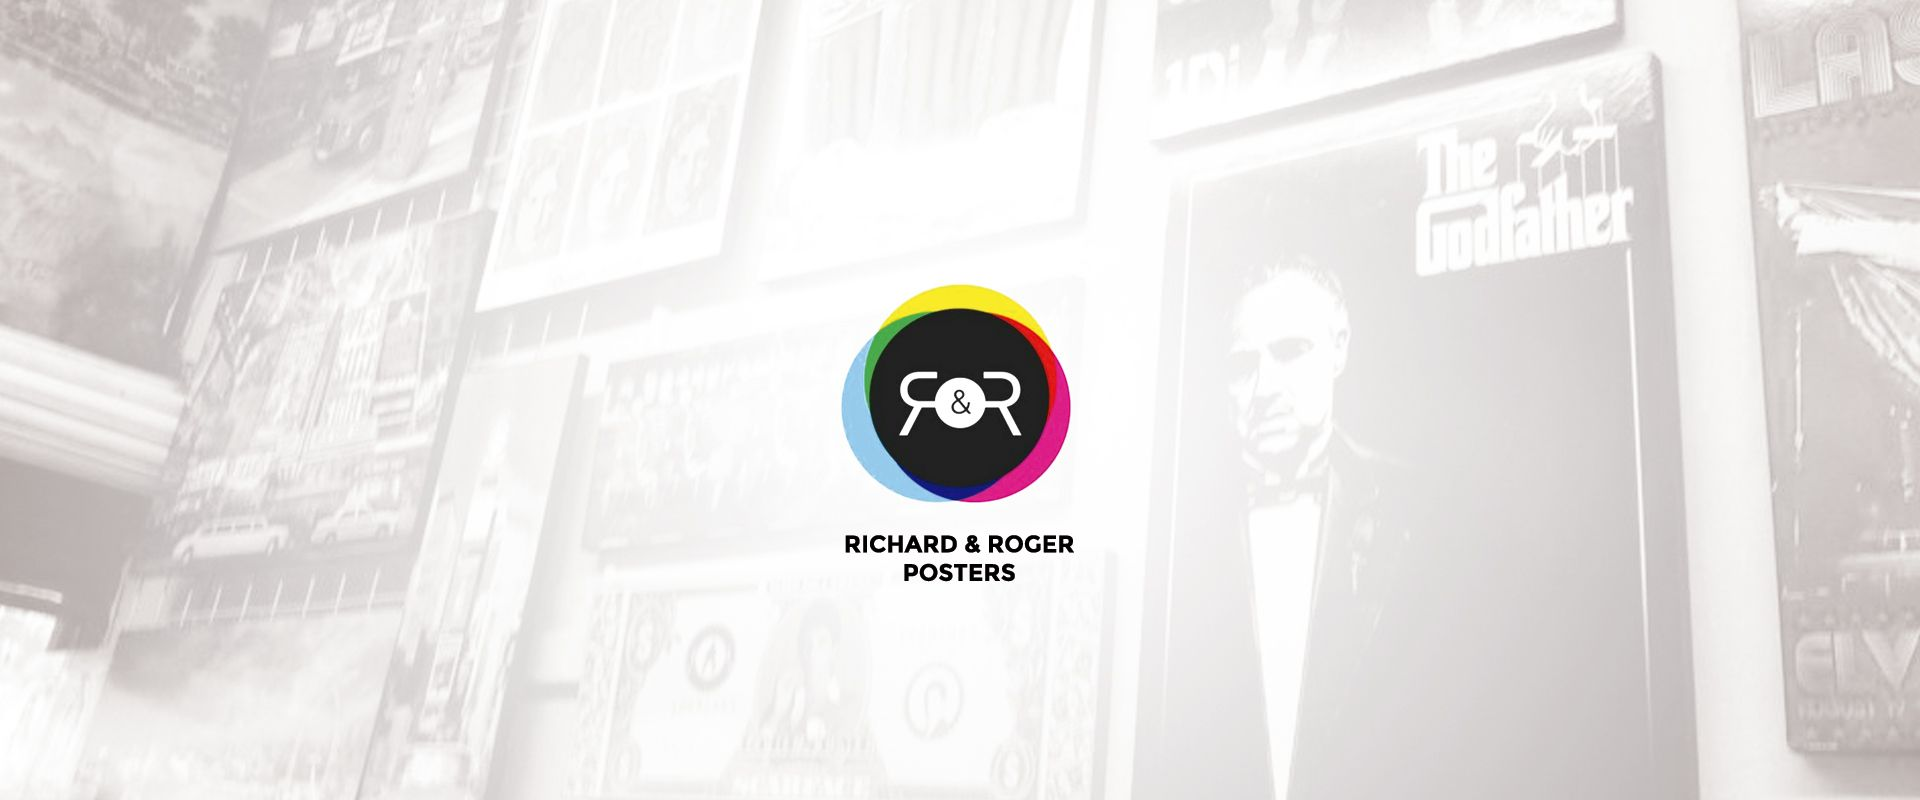 Richard & Roger Posters